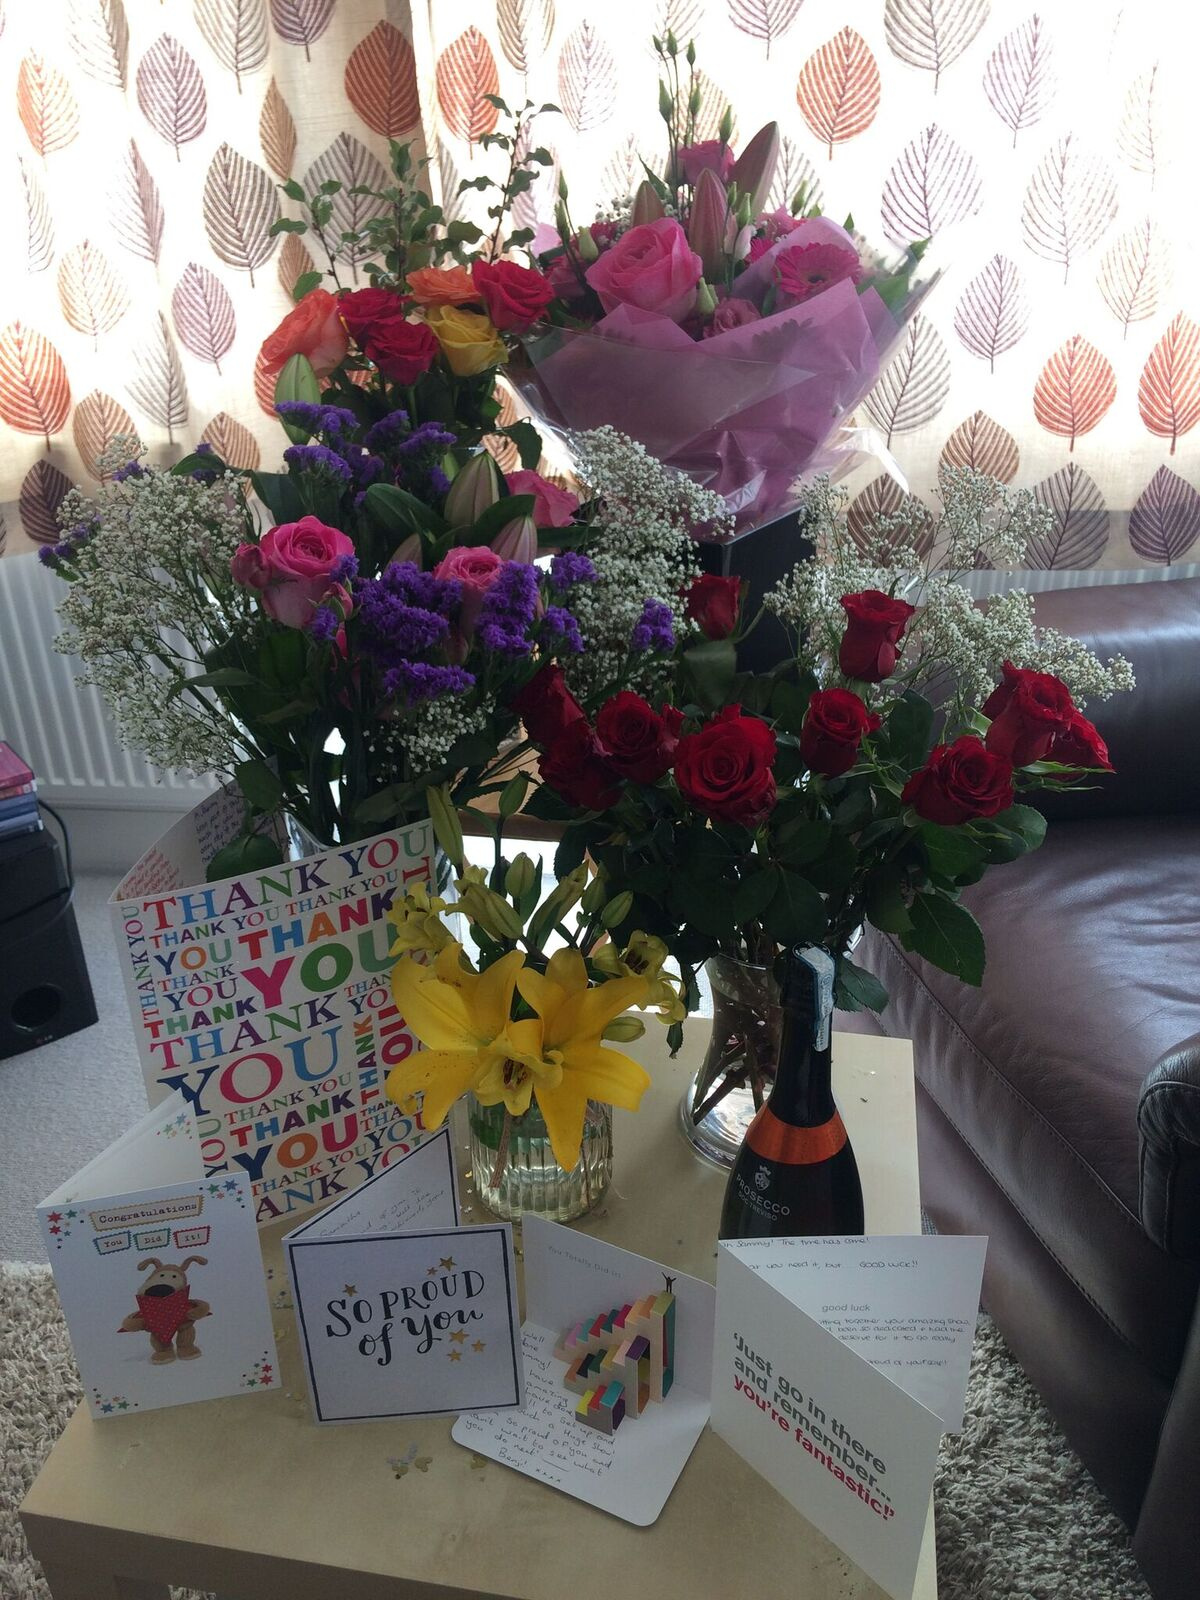 Beautiful thank you flowers and card